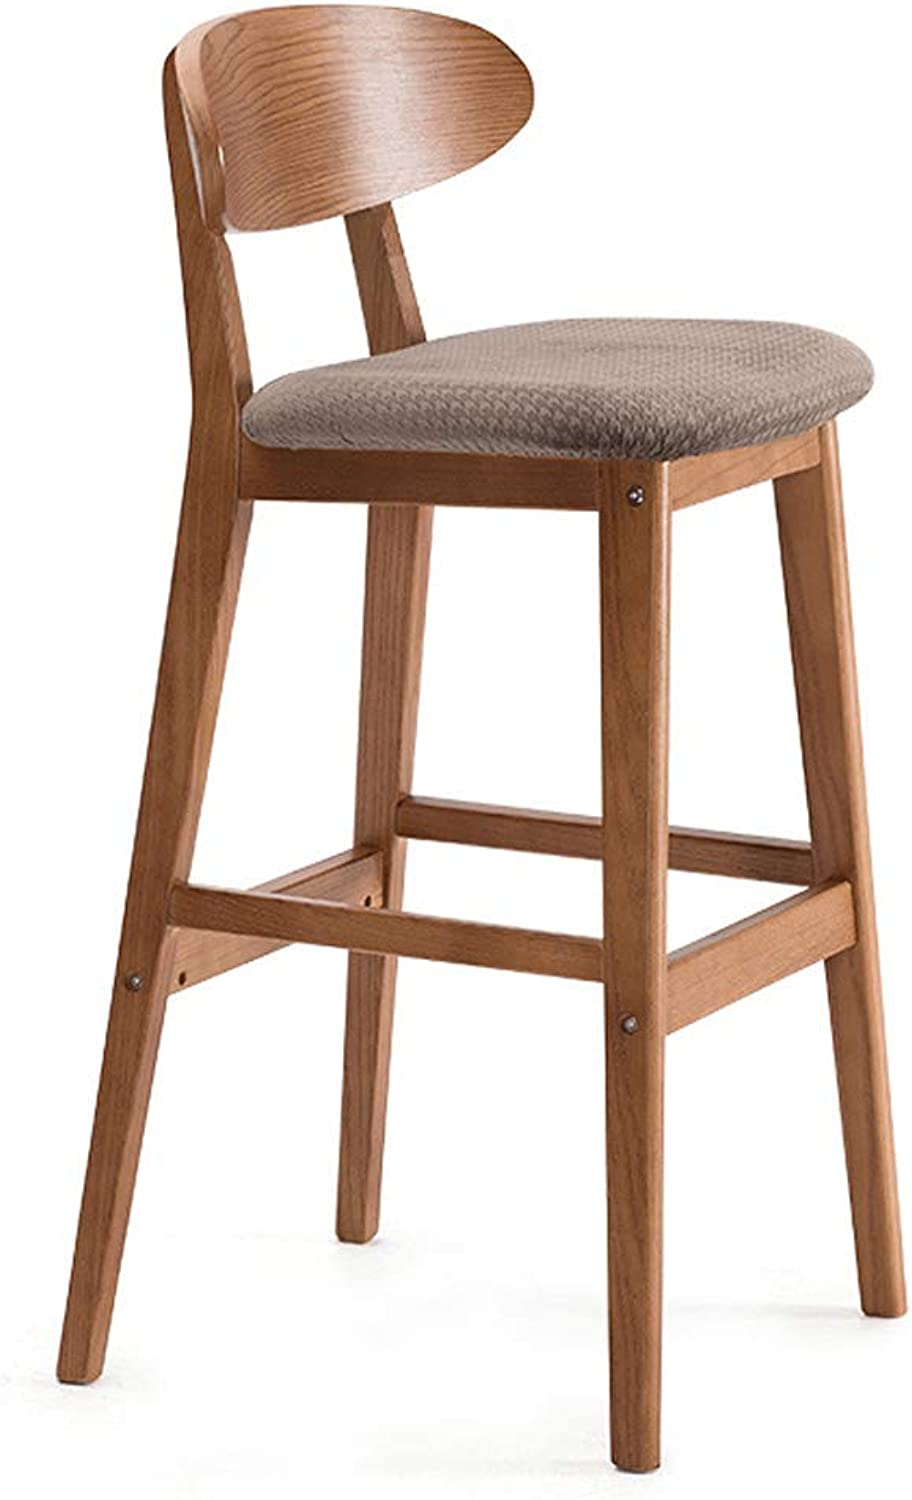 LIQICAI Bar Stool Modern Design PU Leather Adjustable Bar Stools with Back, Counter Height Swivel Stool Bar Chairs, 3 colors (color   Brown)